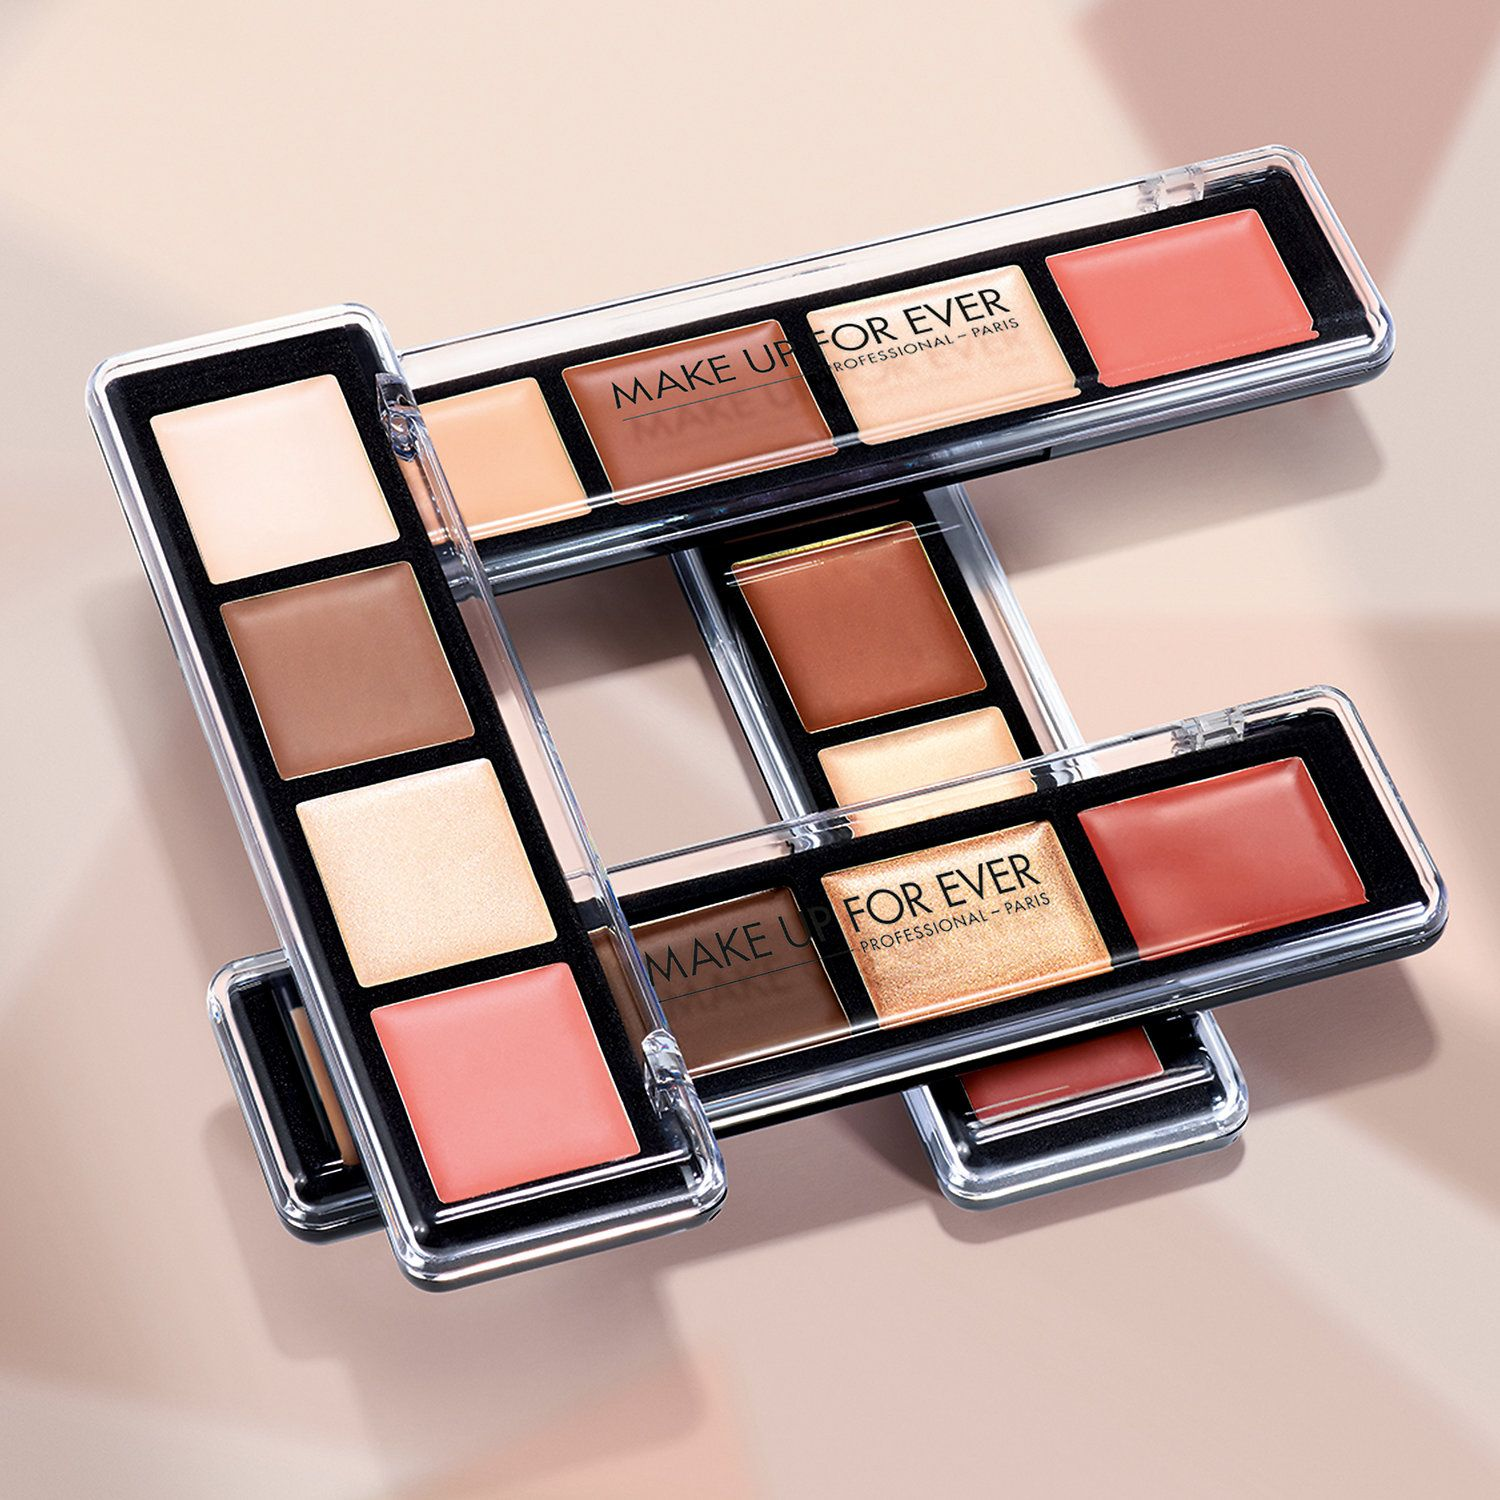 MAKE UP FOR EVER Pro Sculpting Face Palette, new for